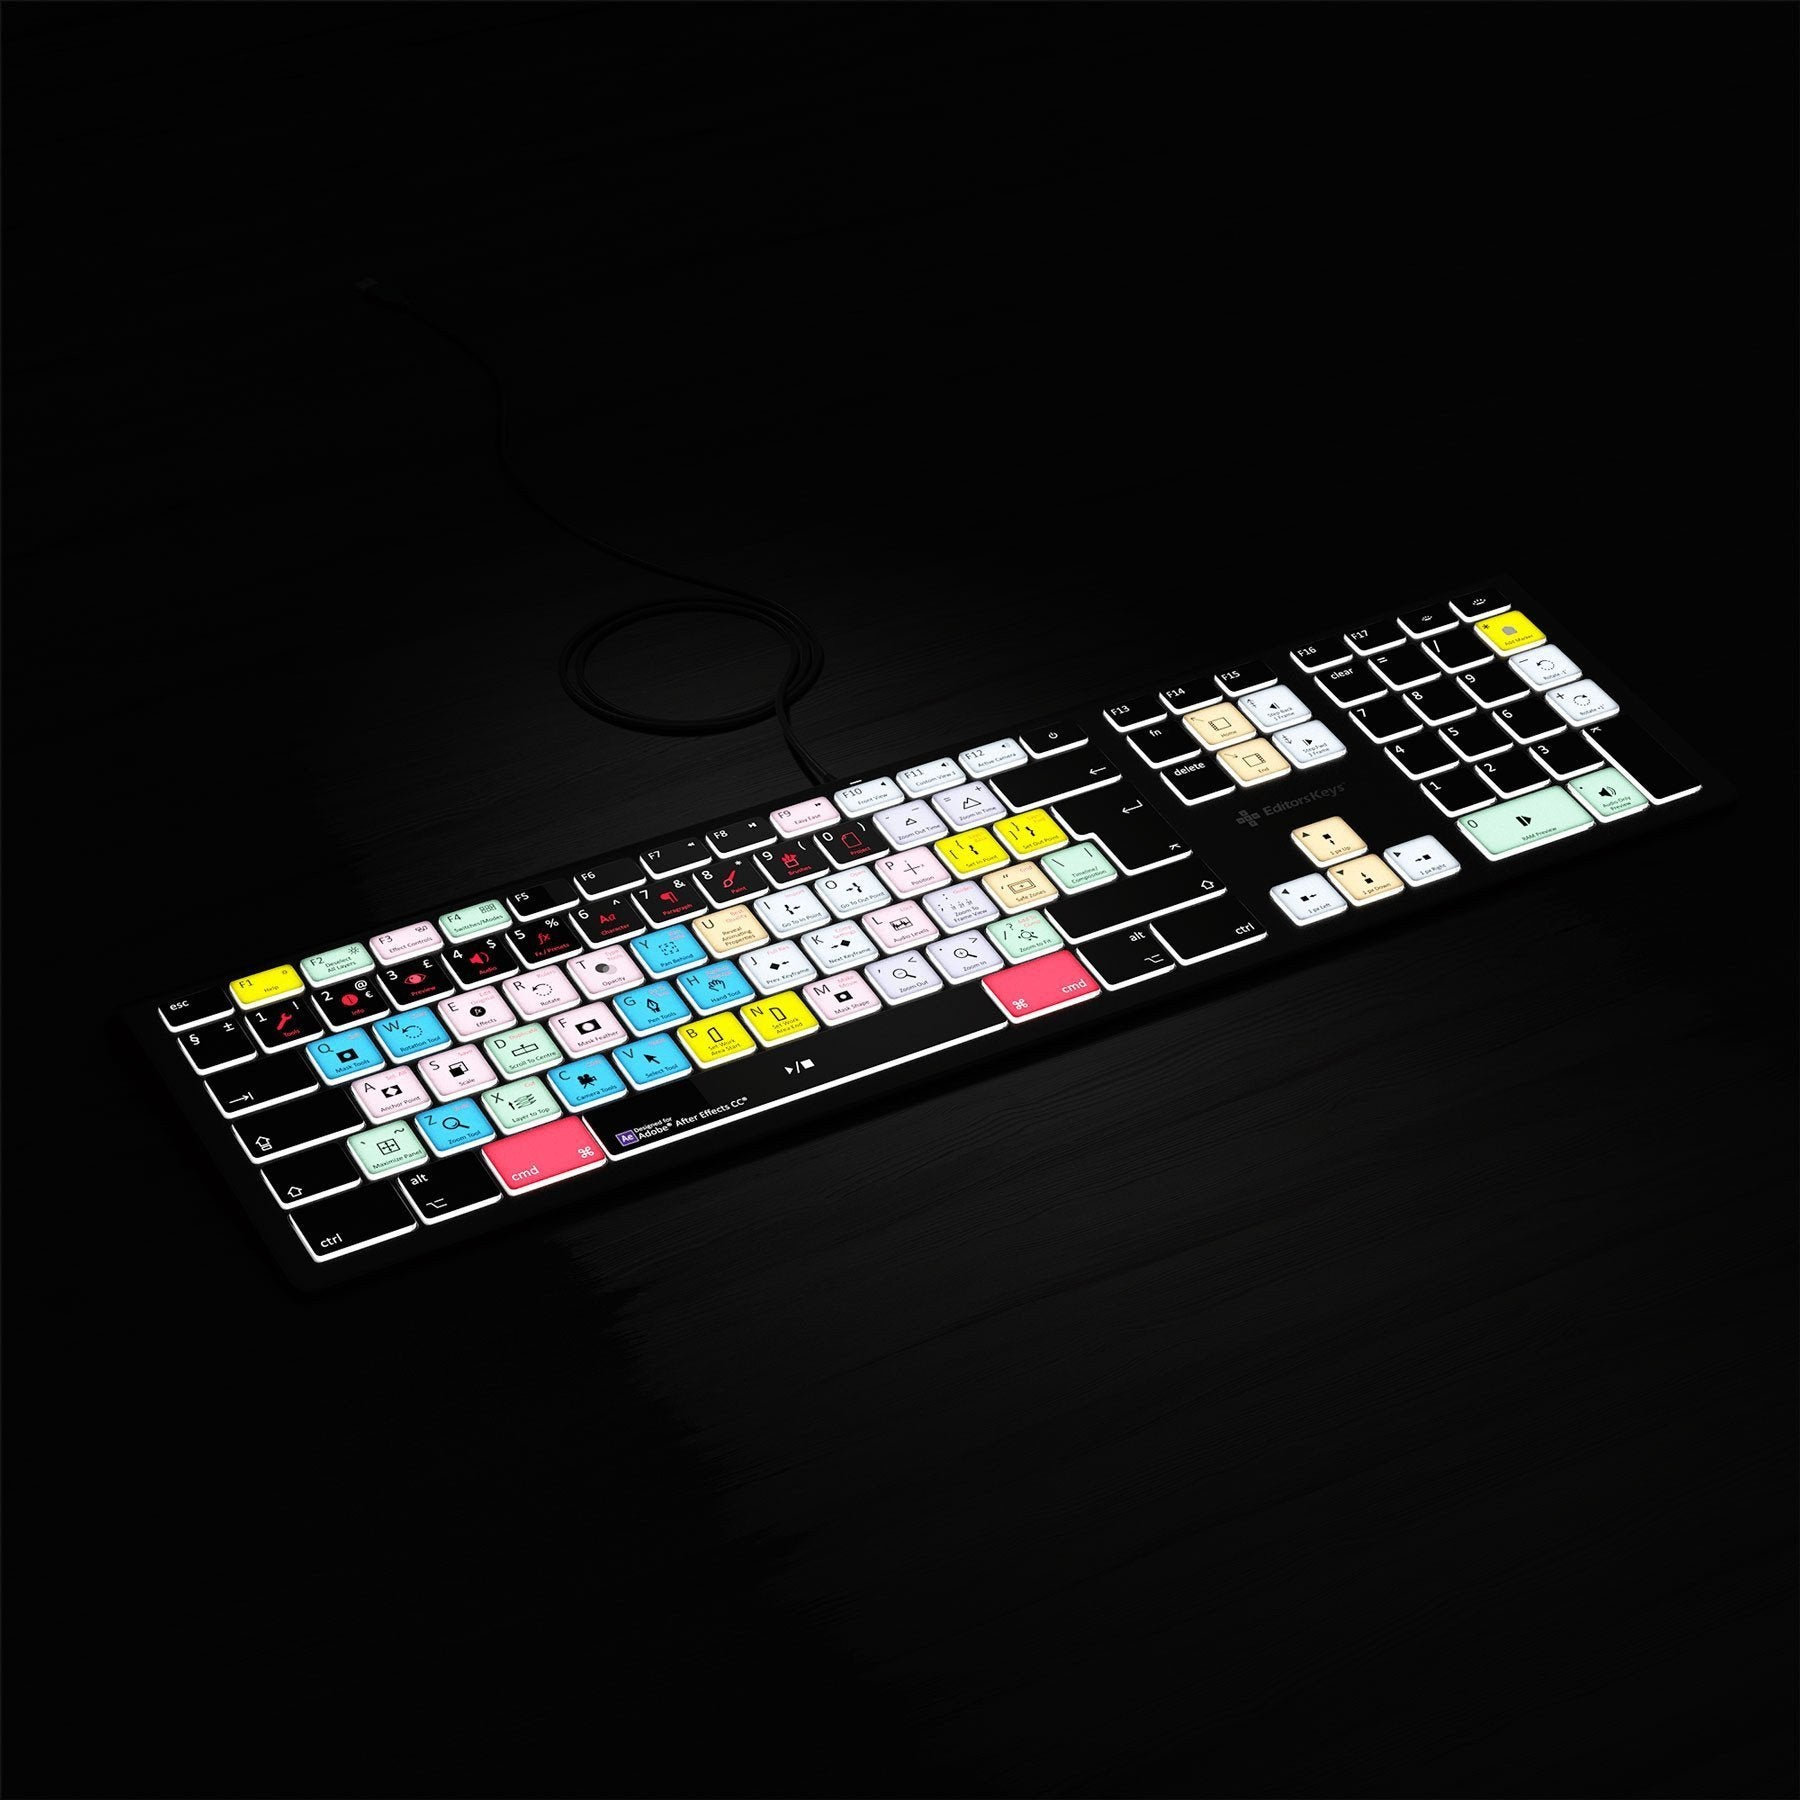 REFRUB Adobe After Effects Keyboard - Backlit - For Mac or PC